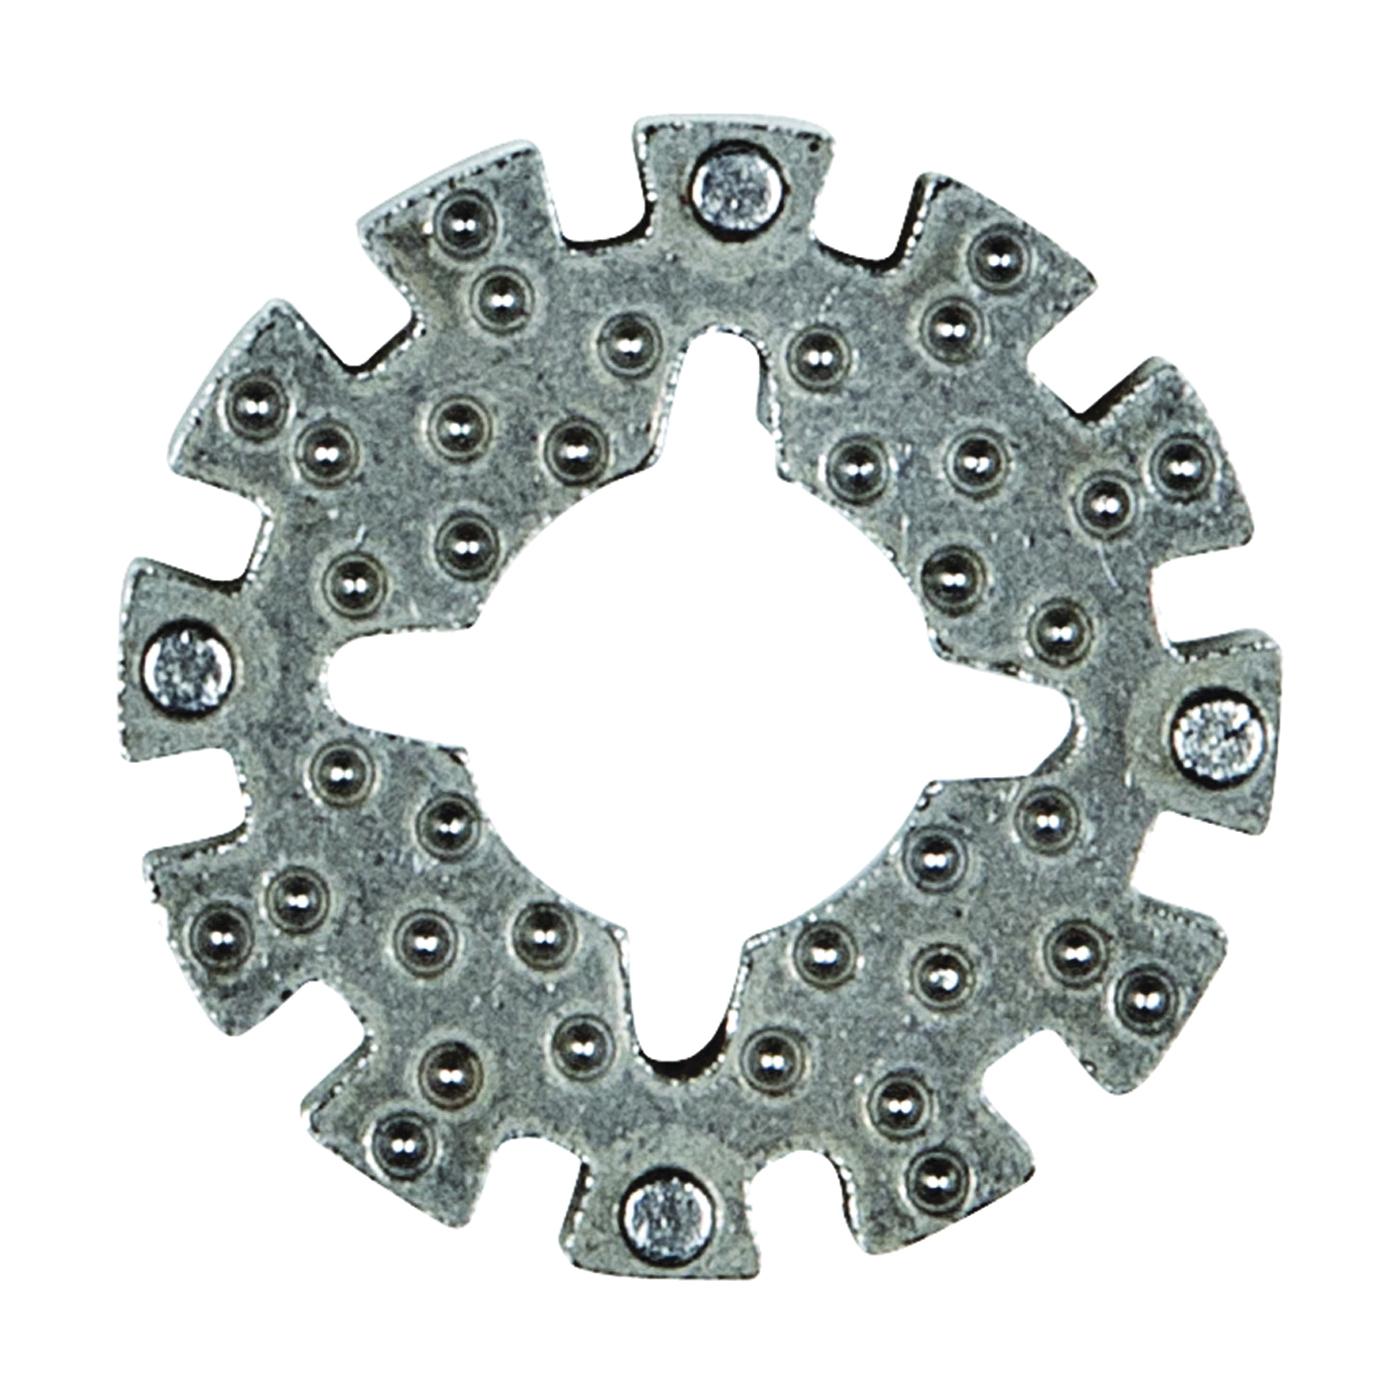 Picture of Genesis GAMT403 Adapter, Gray, For: Rockwell Sonicrafter Hex Interface Oscillating Tool, 1, Pack